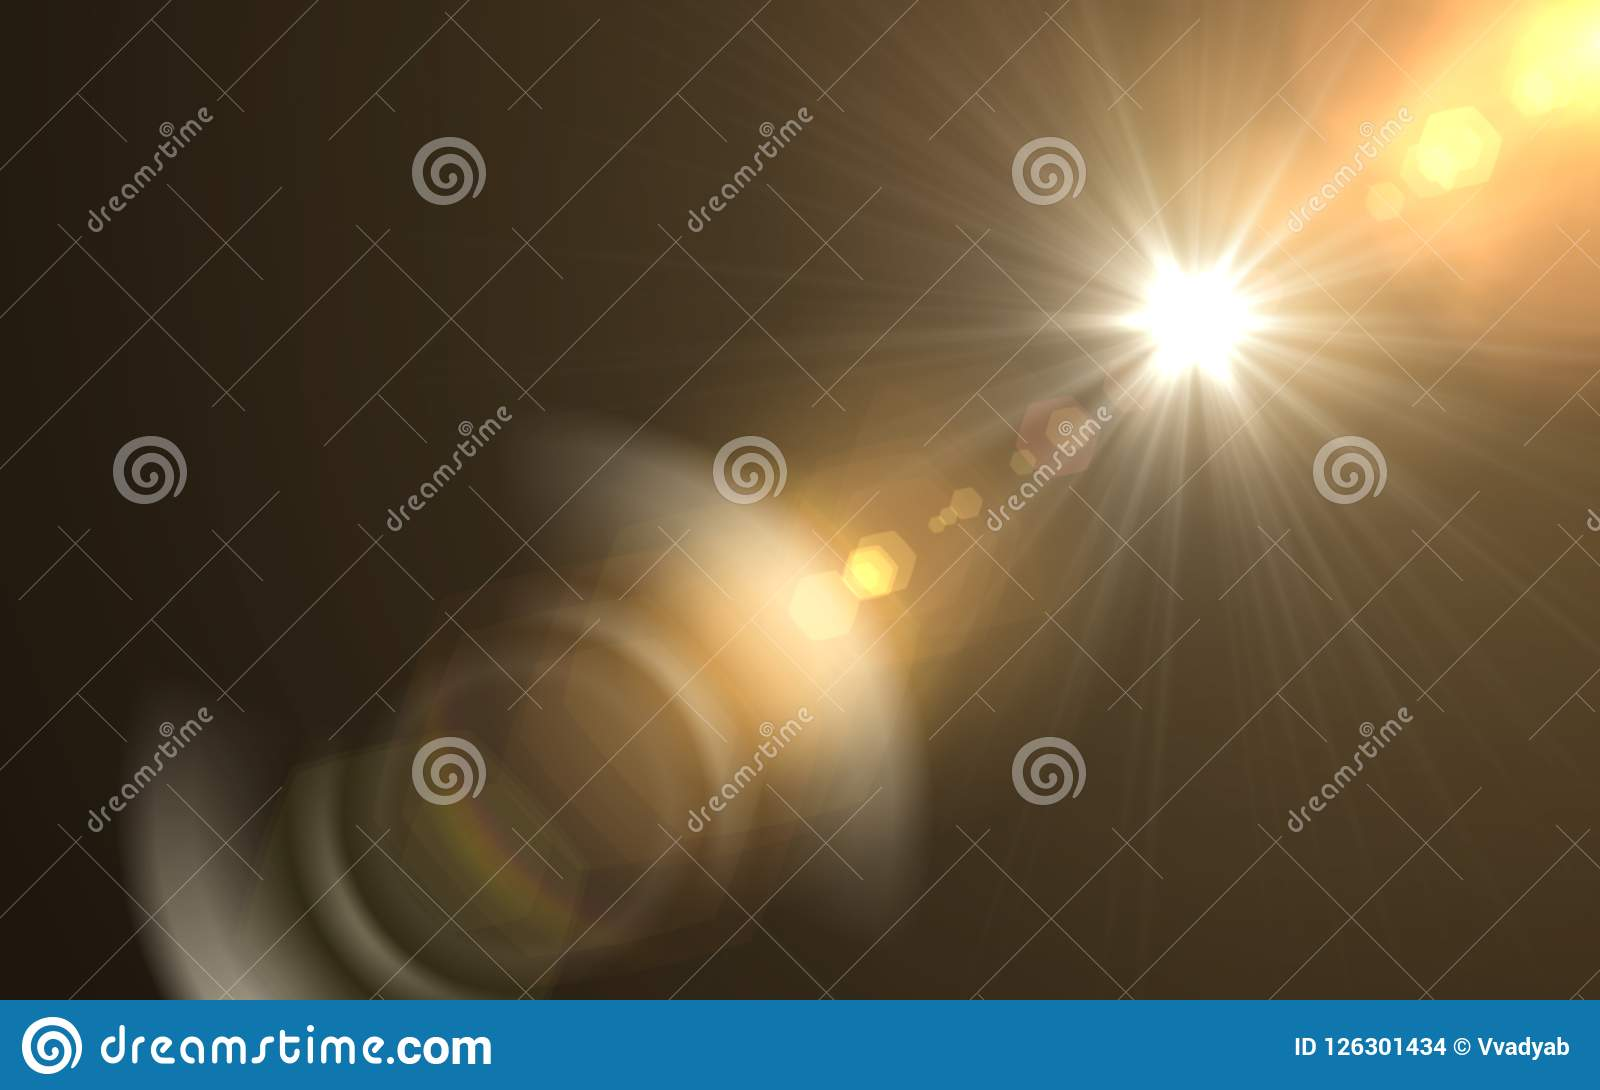 Abstract sun burst with digital lens flare background.Abstract digital lens flares special lighting effects on black